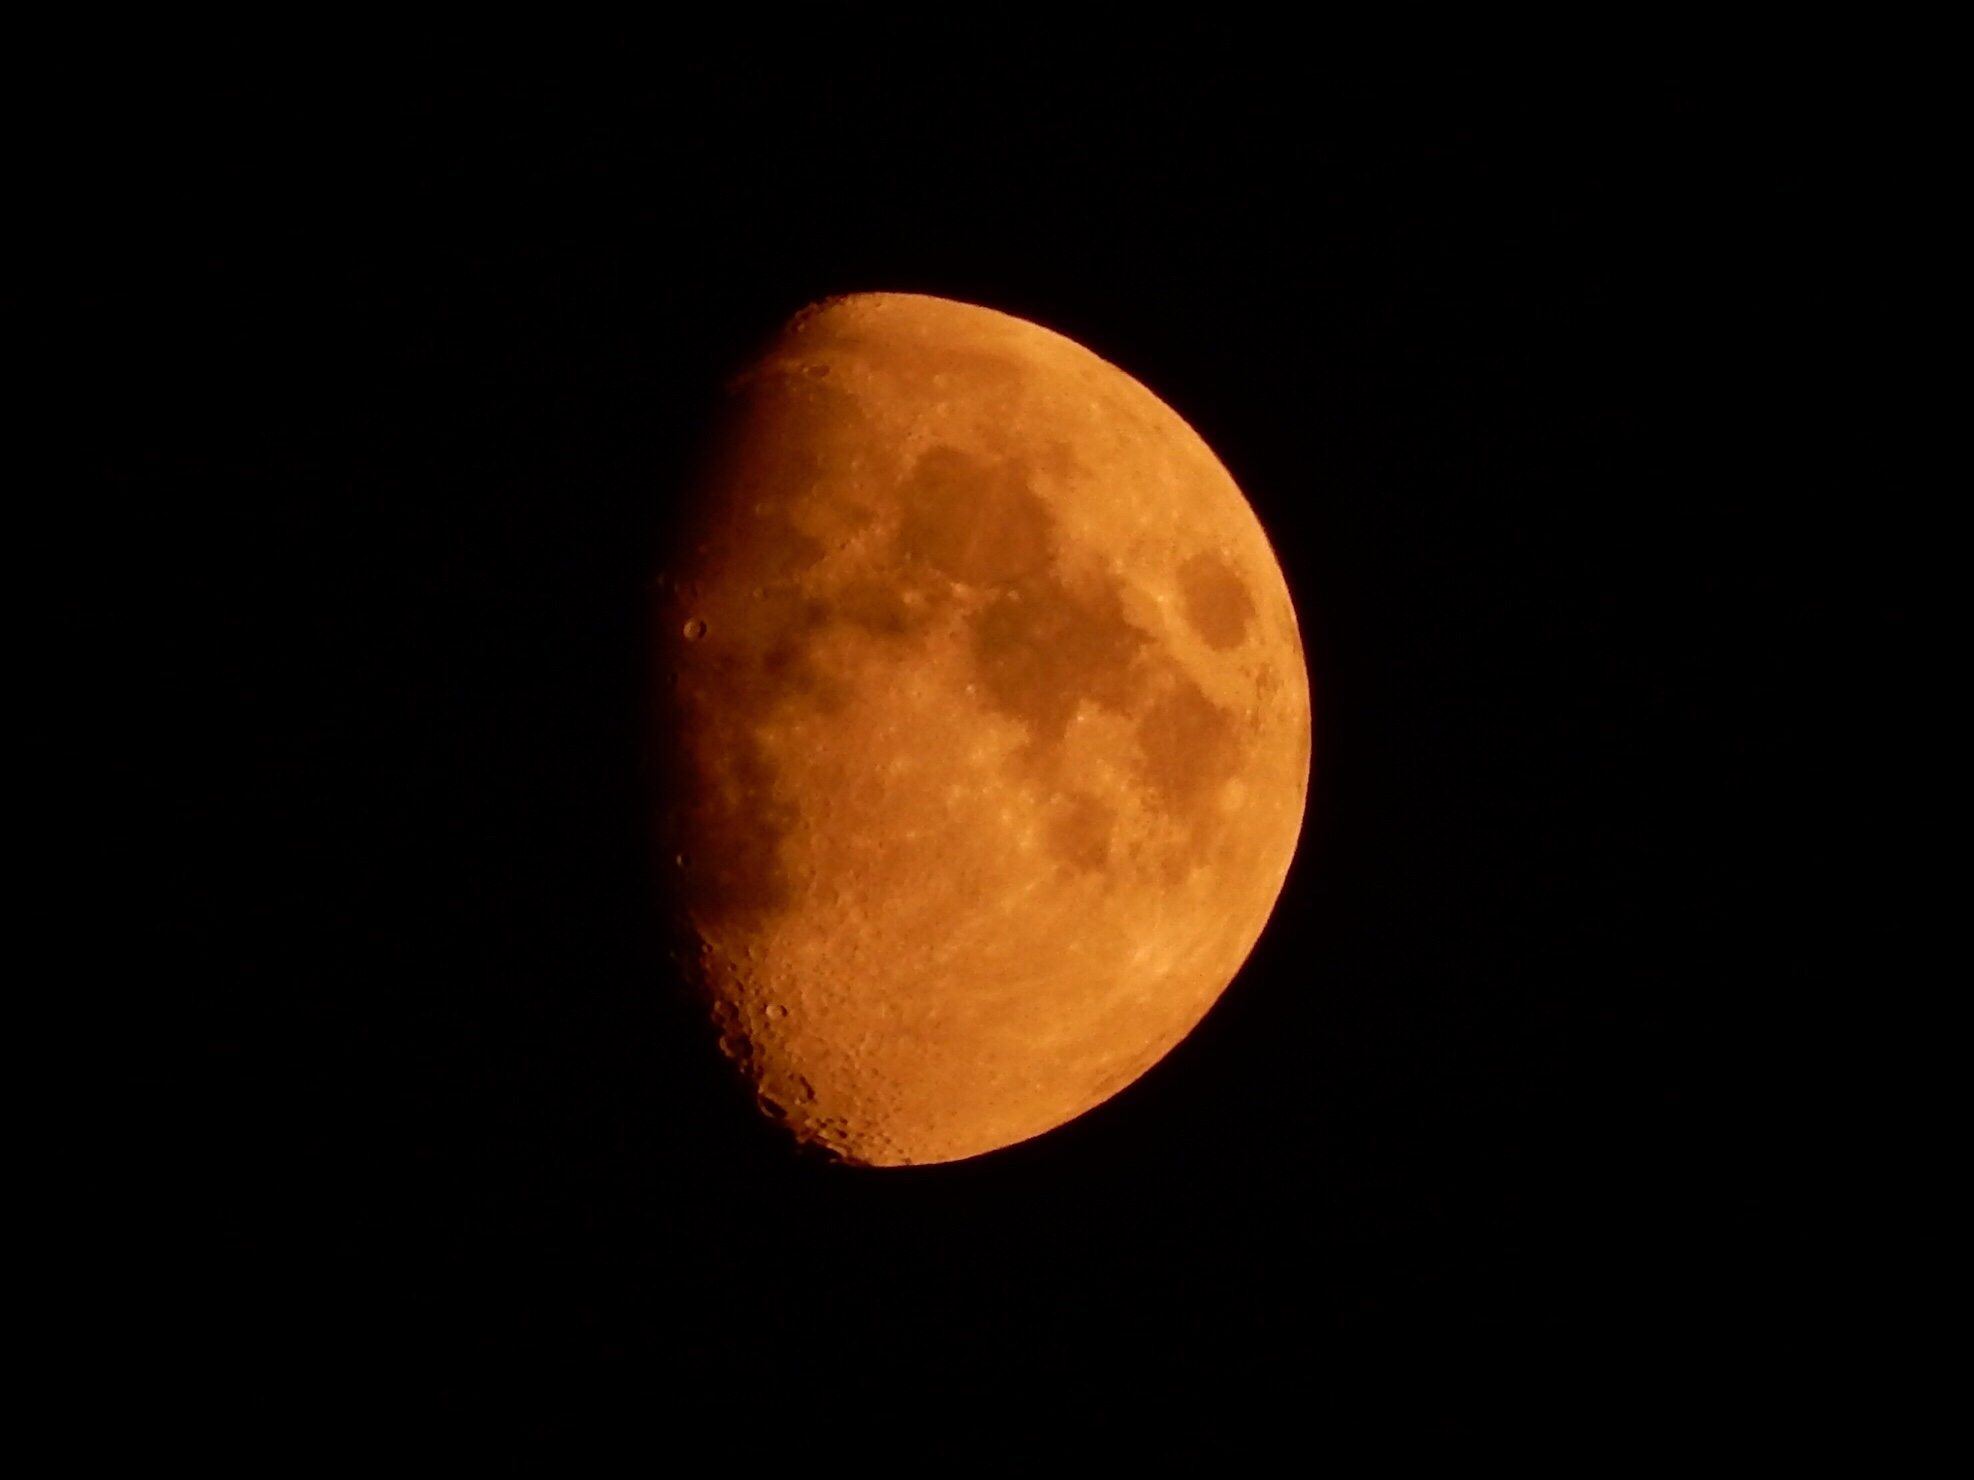 Red moons are usually photographed close to the horizon where the man-made particulates in the air make the moon show red. This moon, however, is high in the sky. The red comes from all the smoke in the air from all the wildfires burning in British Columbia.